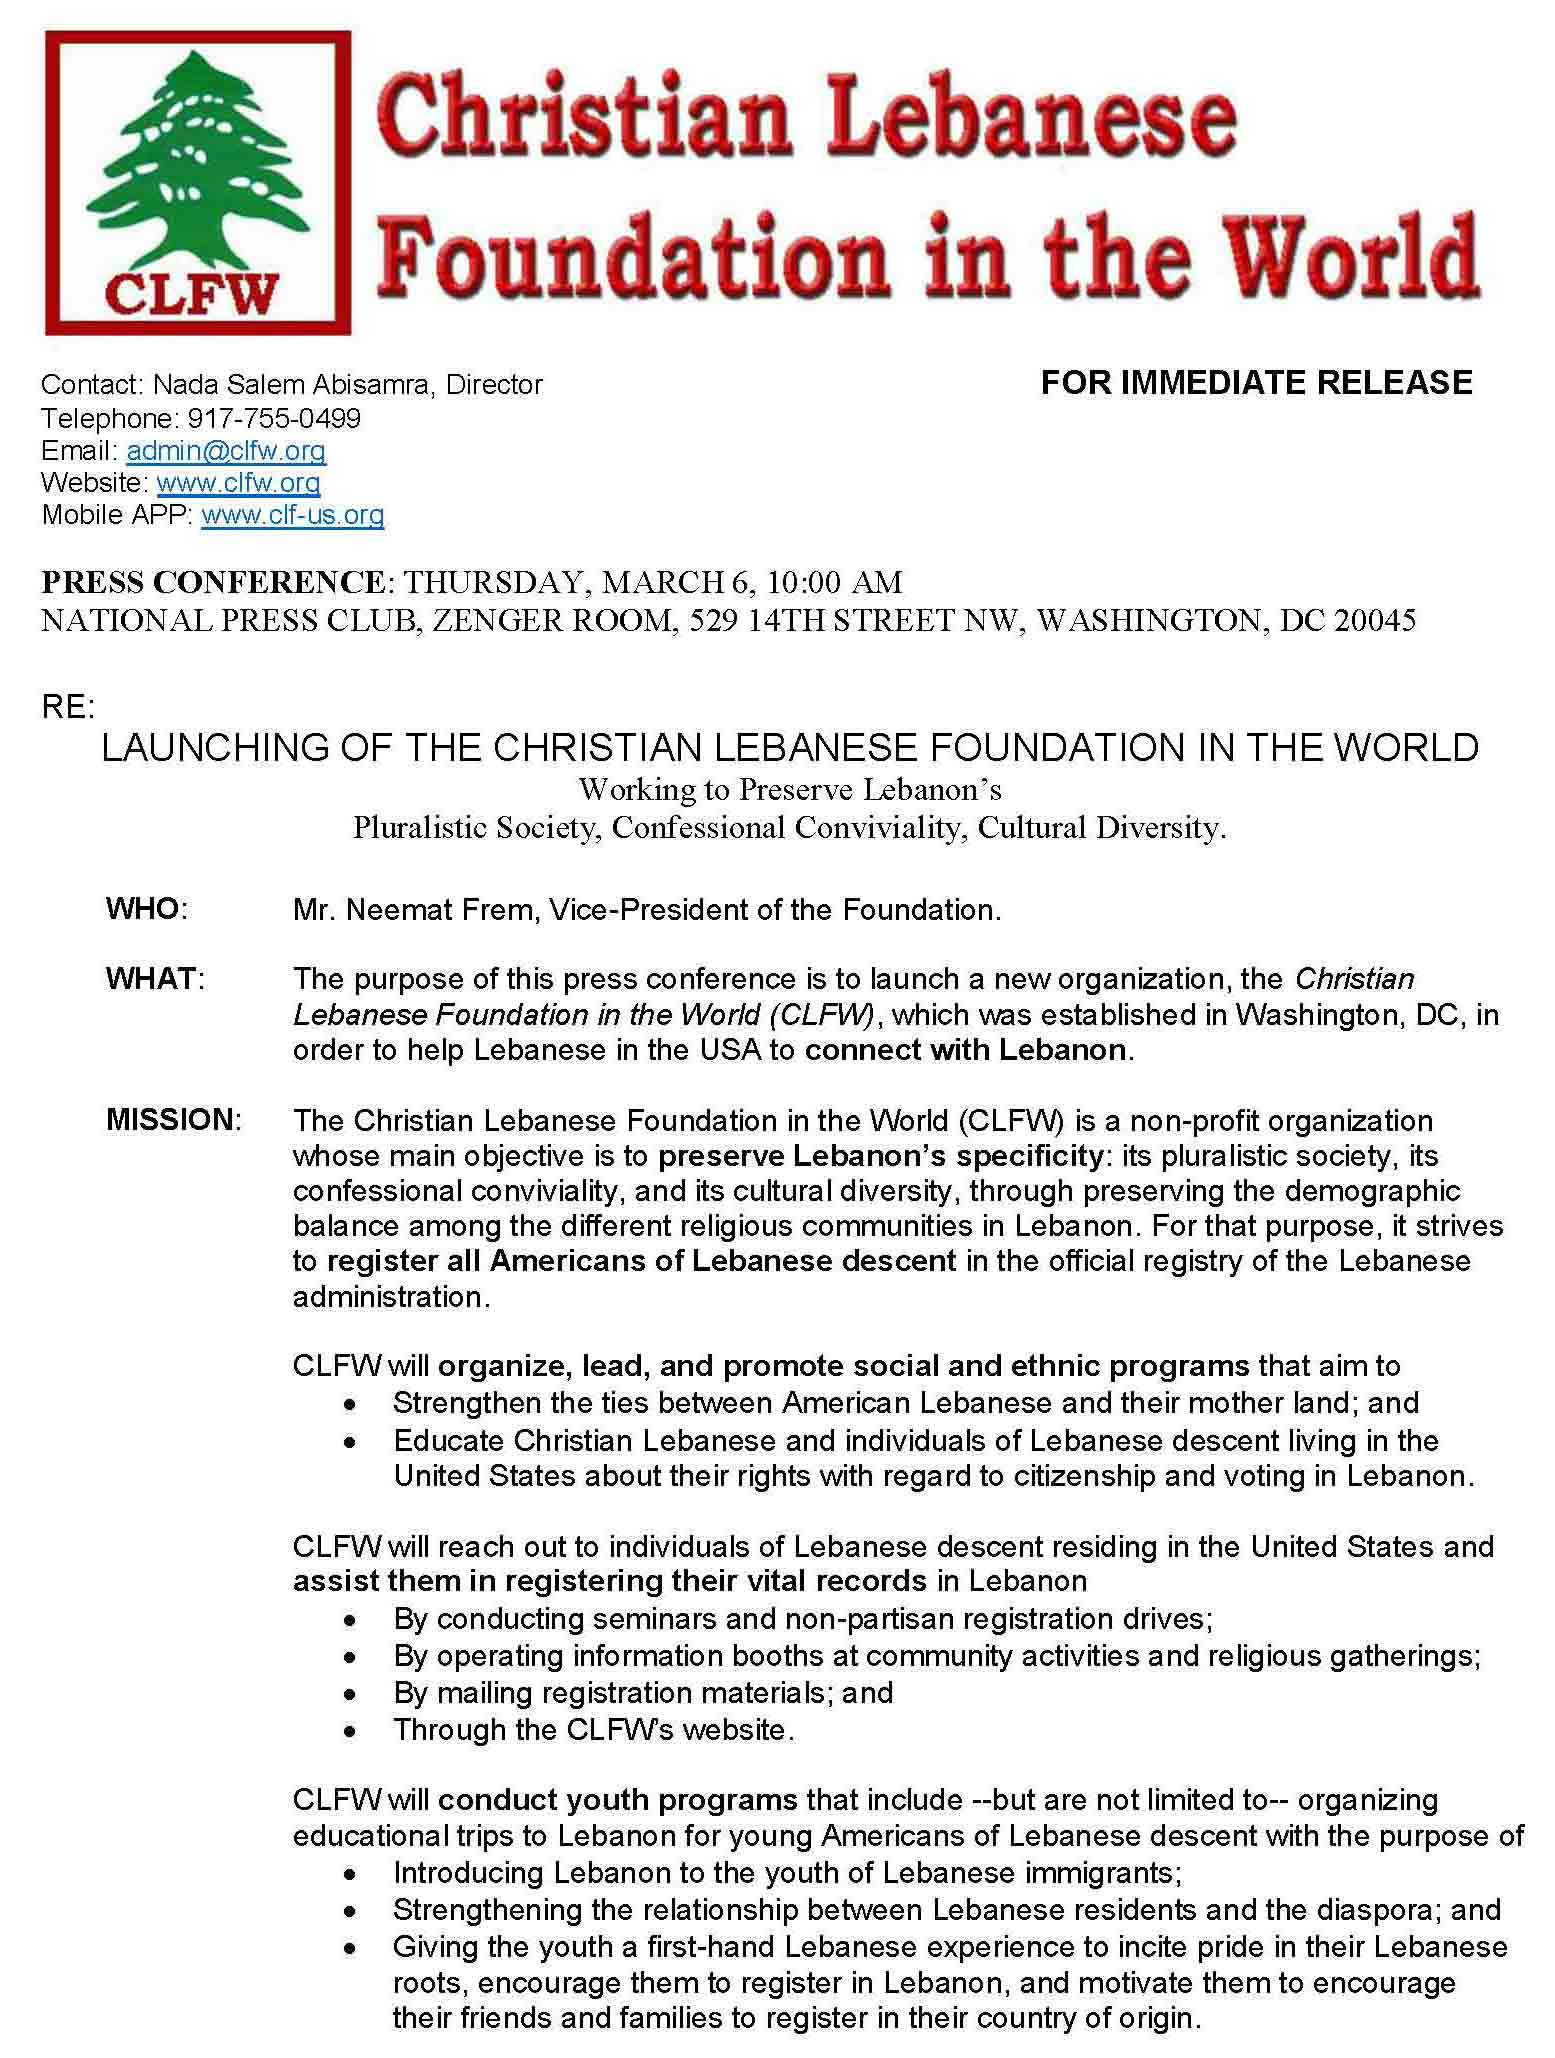 CLFW- Launching-Press-Release-CLFW--March-6-at-10-AM--Press-Club2